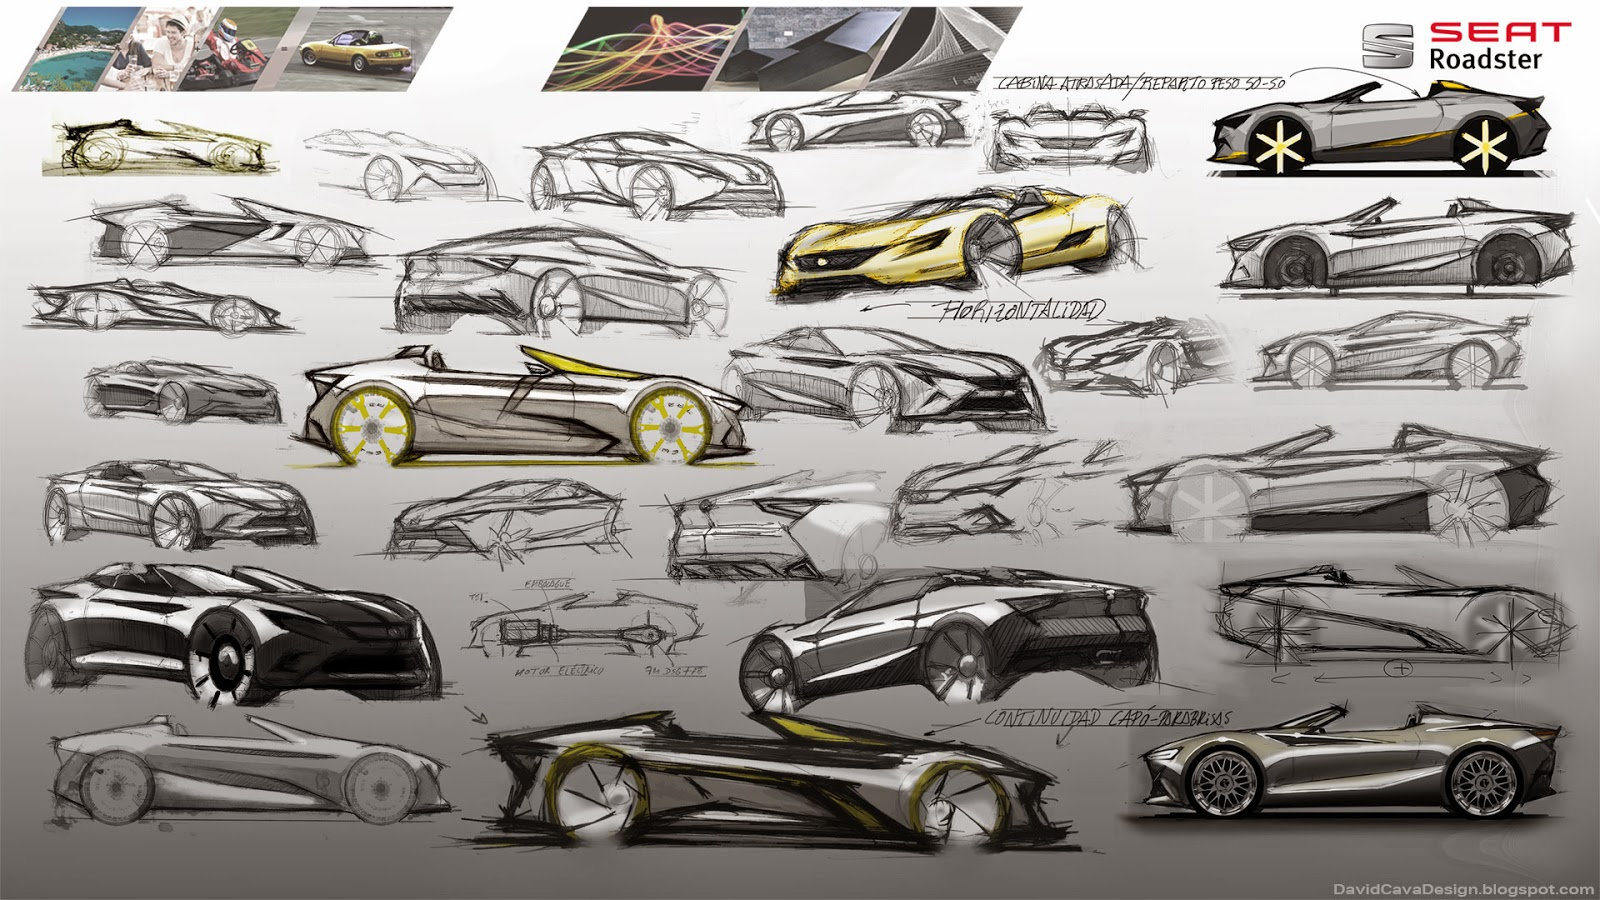 Seat Roadster Design Study For A Spanish Mazda Mx 5